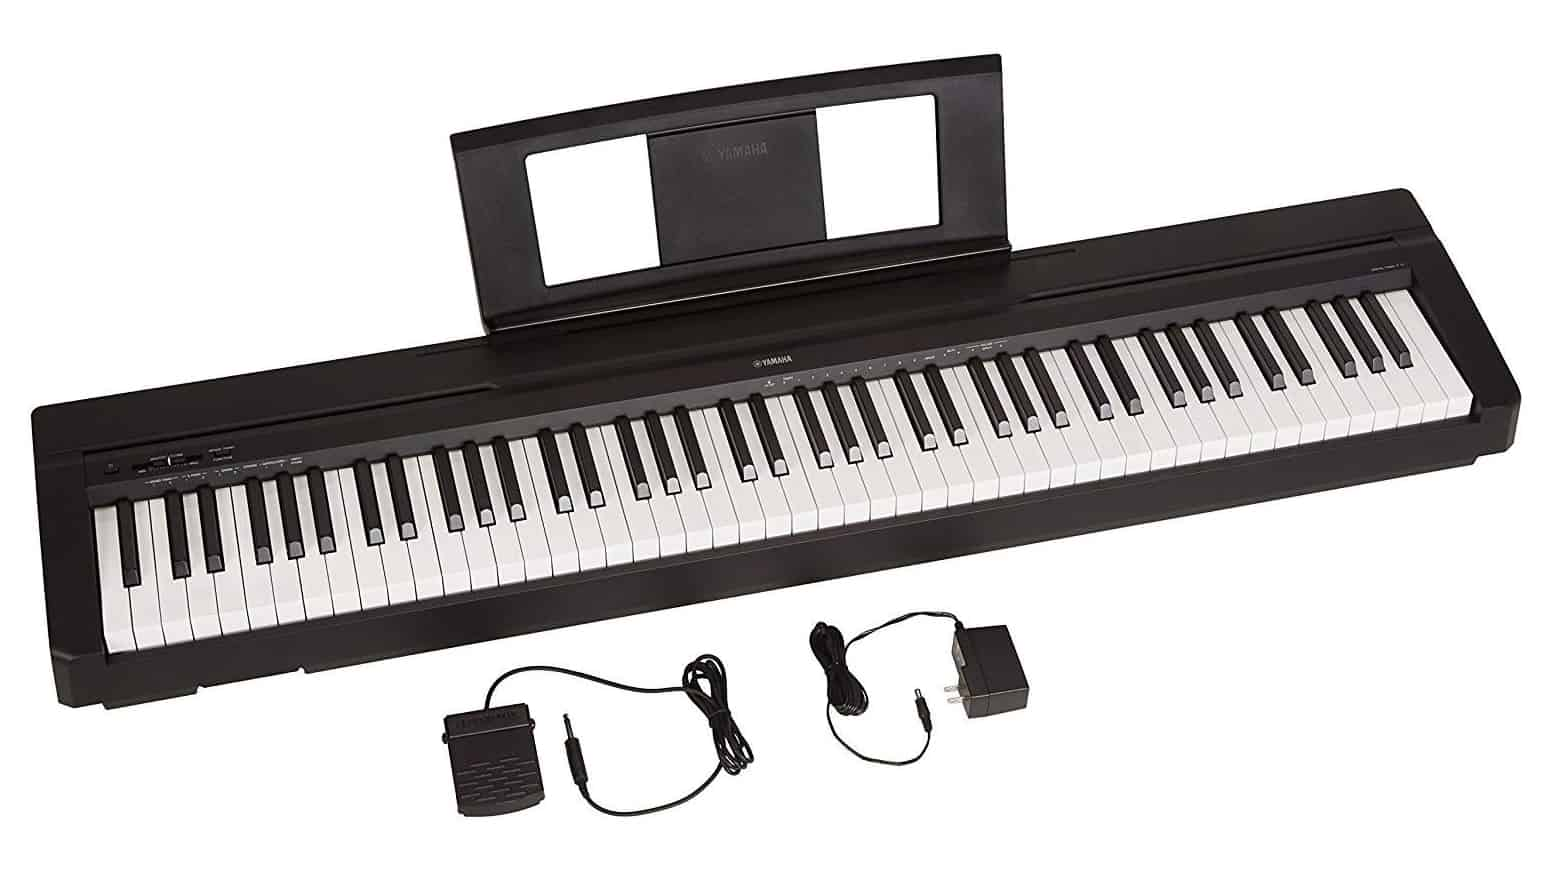 Yamaha P71 Electric Keyboard Review